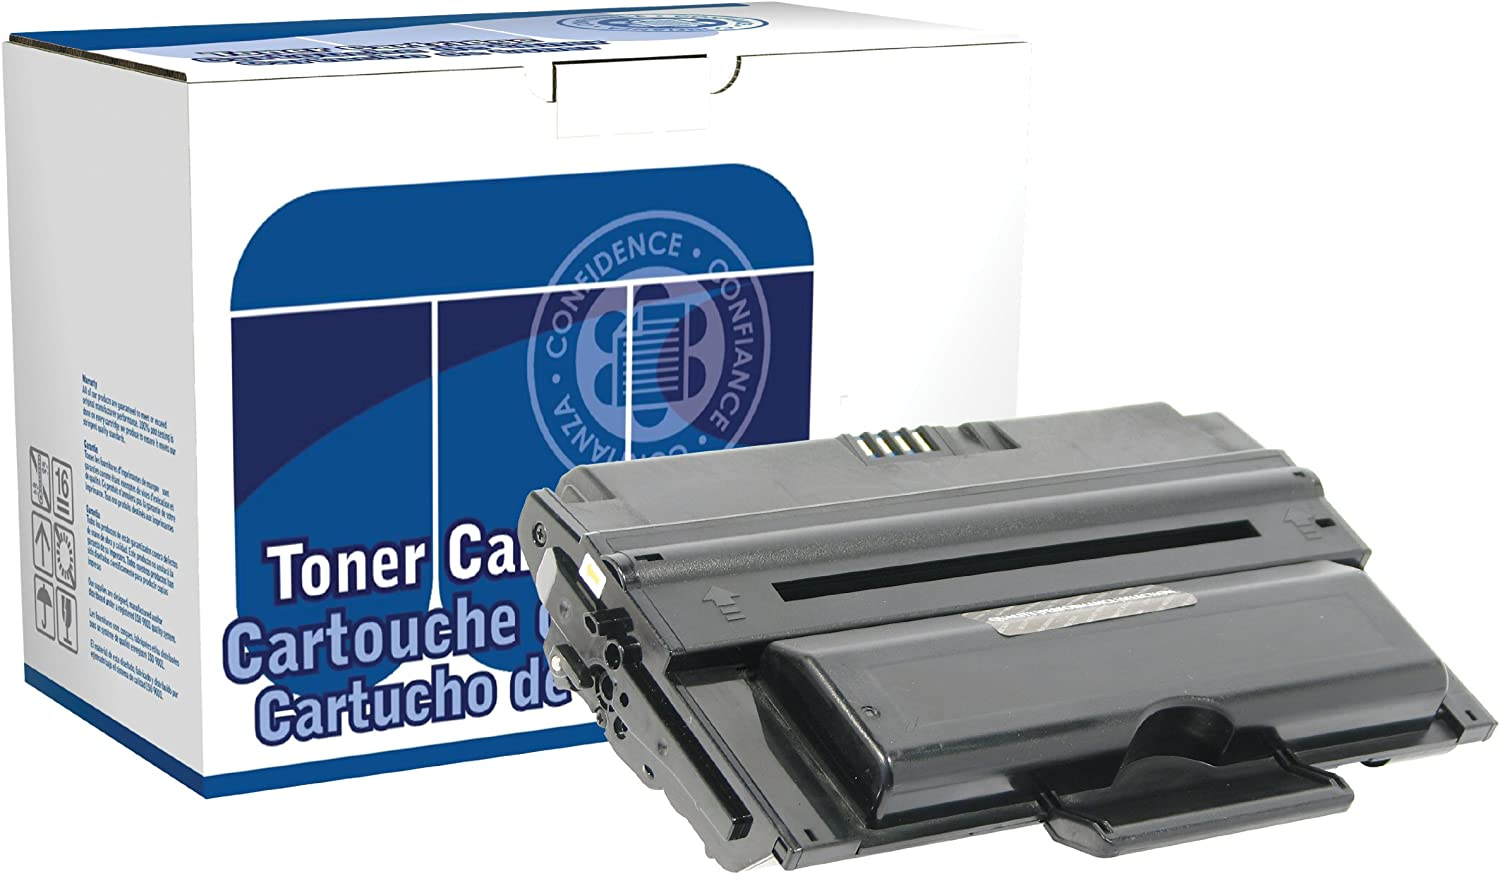 Dataproducts DPCD2335 Remanufactured High Yield Toner Cartridge Replacement for Dell 2335DN